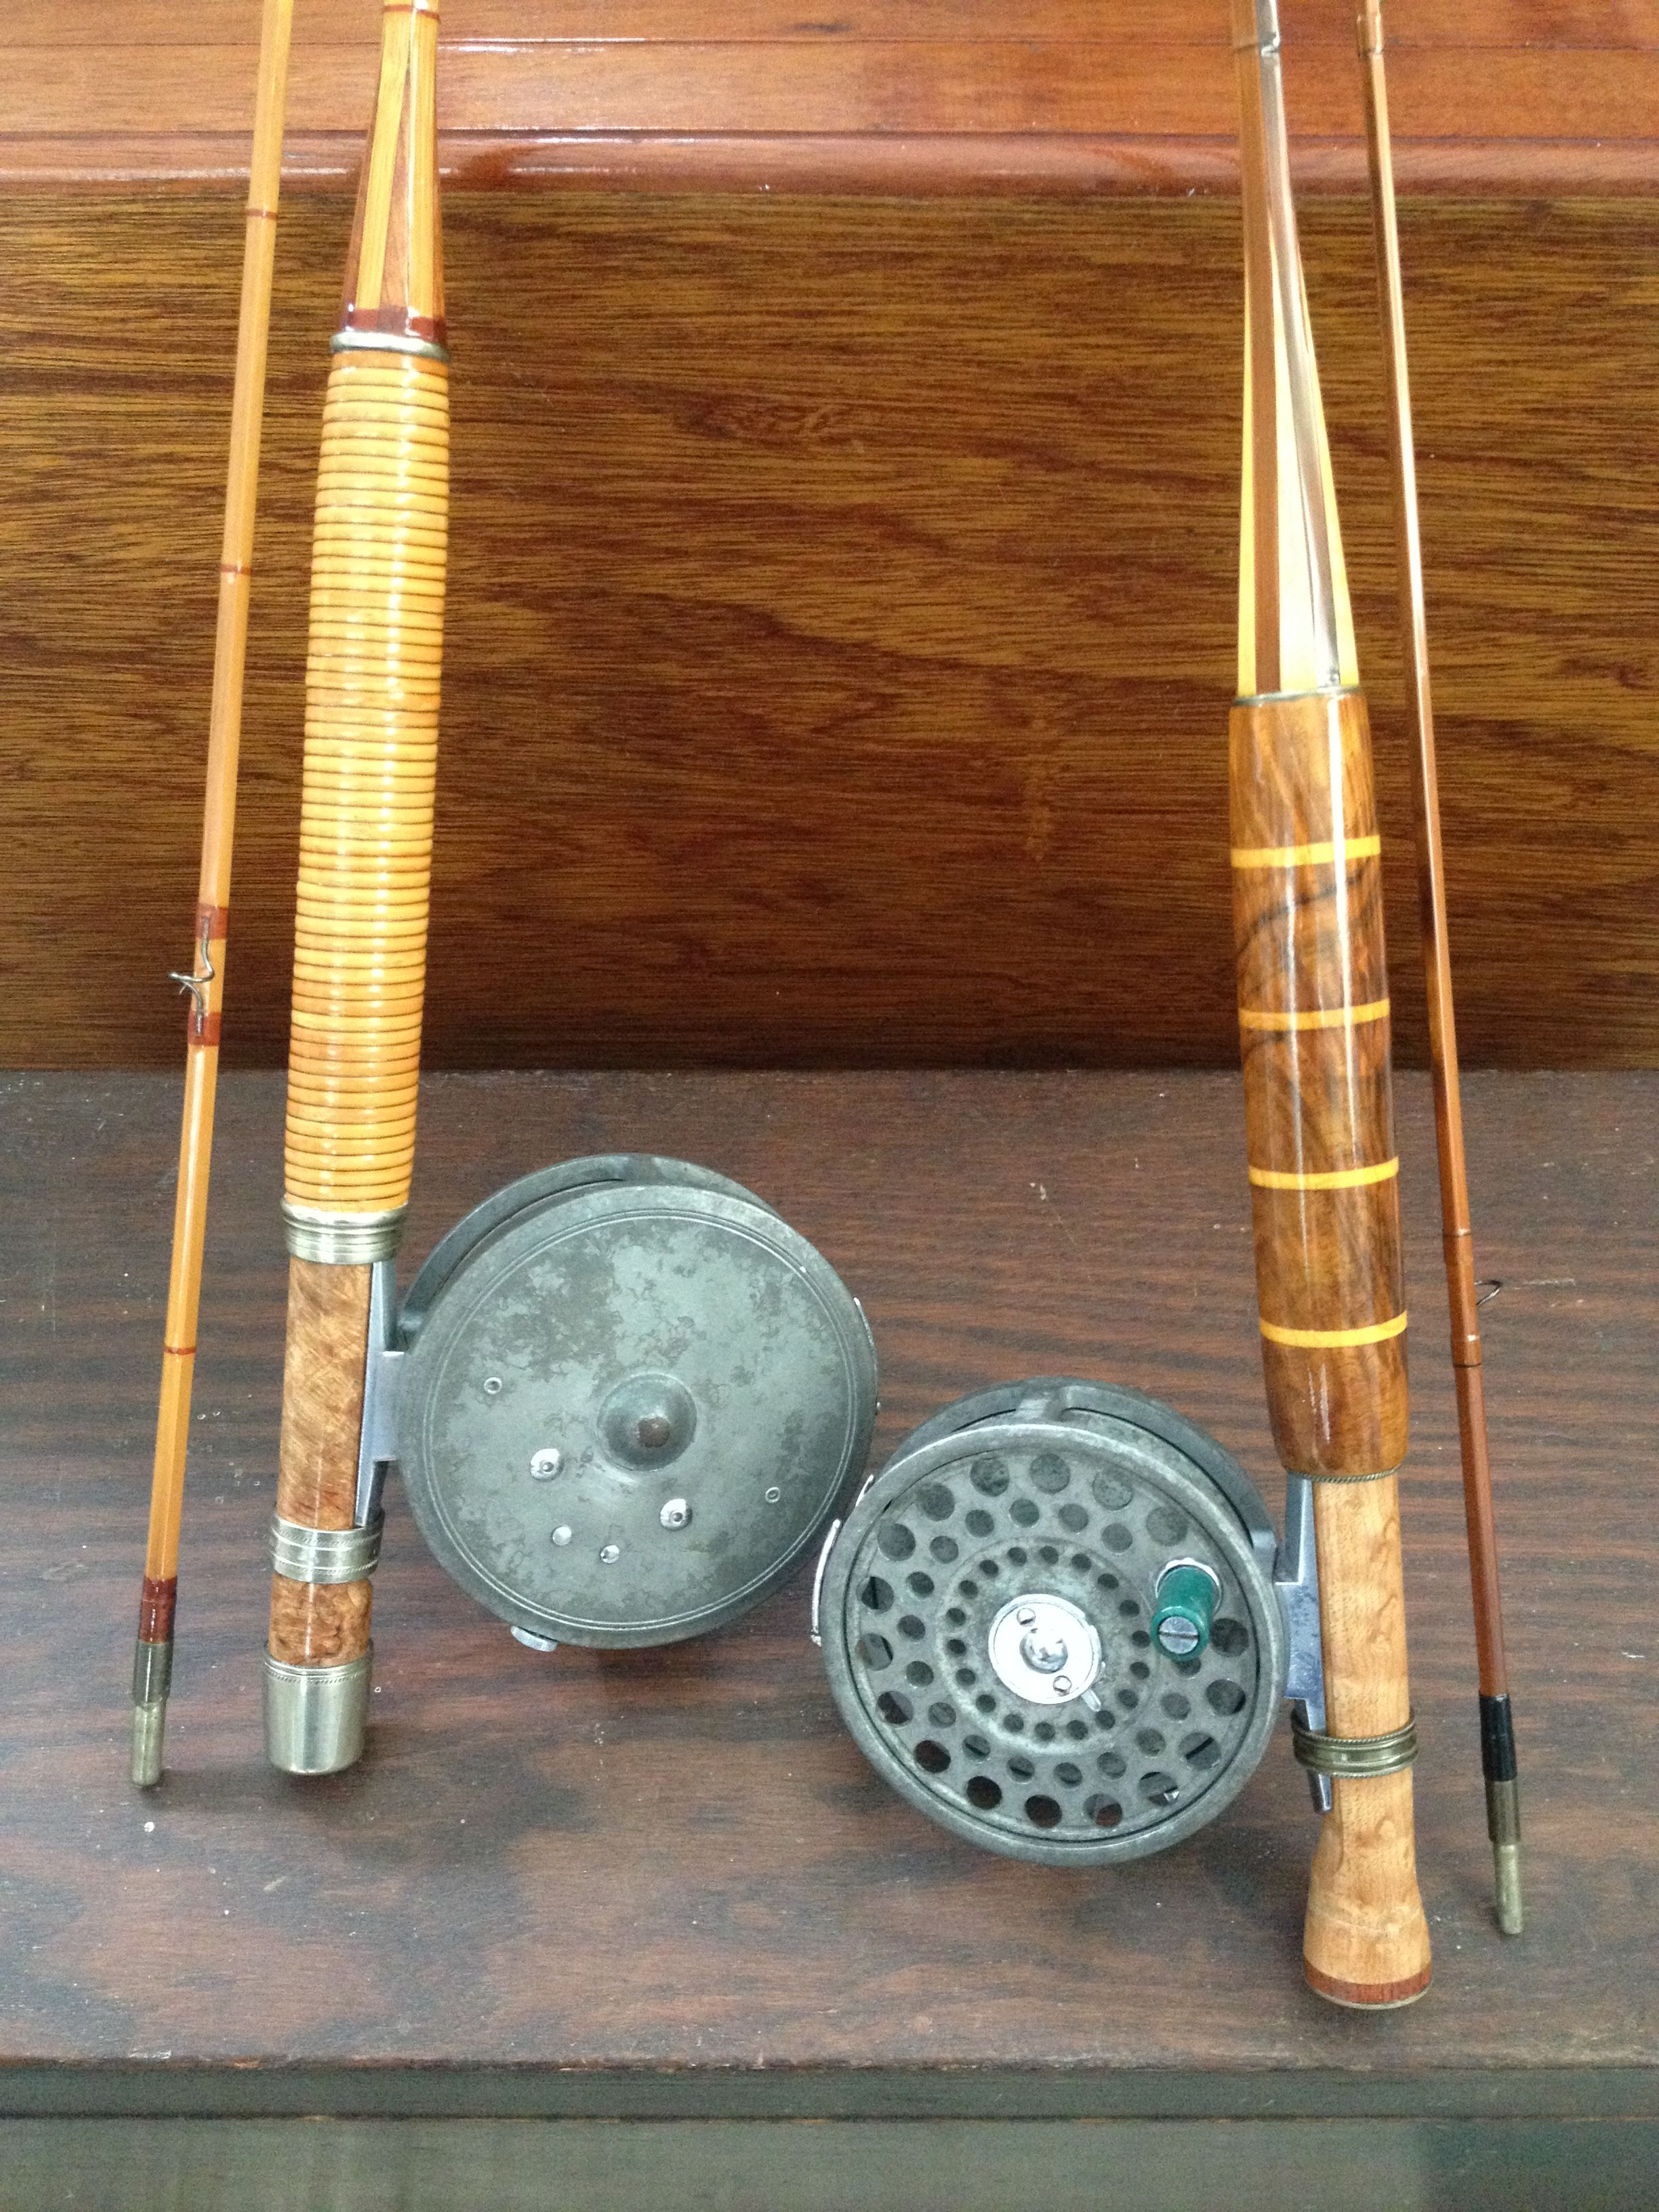 Anthony Miller Maker Bamboo Fly Rods Bambooflyrod Flyrod Flyfishing Fly Fishing Pole Fly Fishing Bamboo Fly Rod